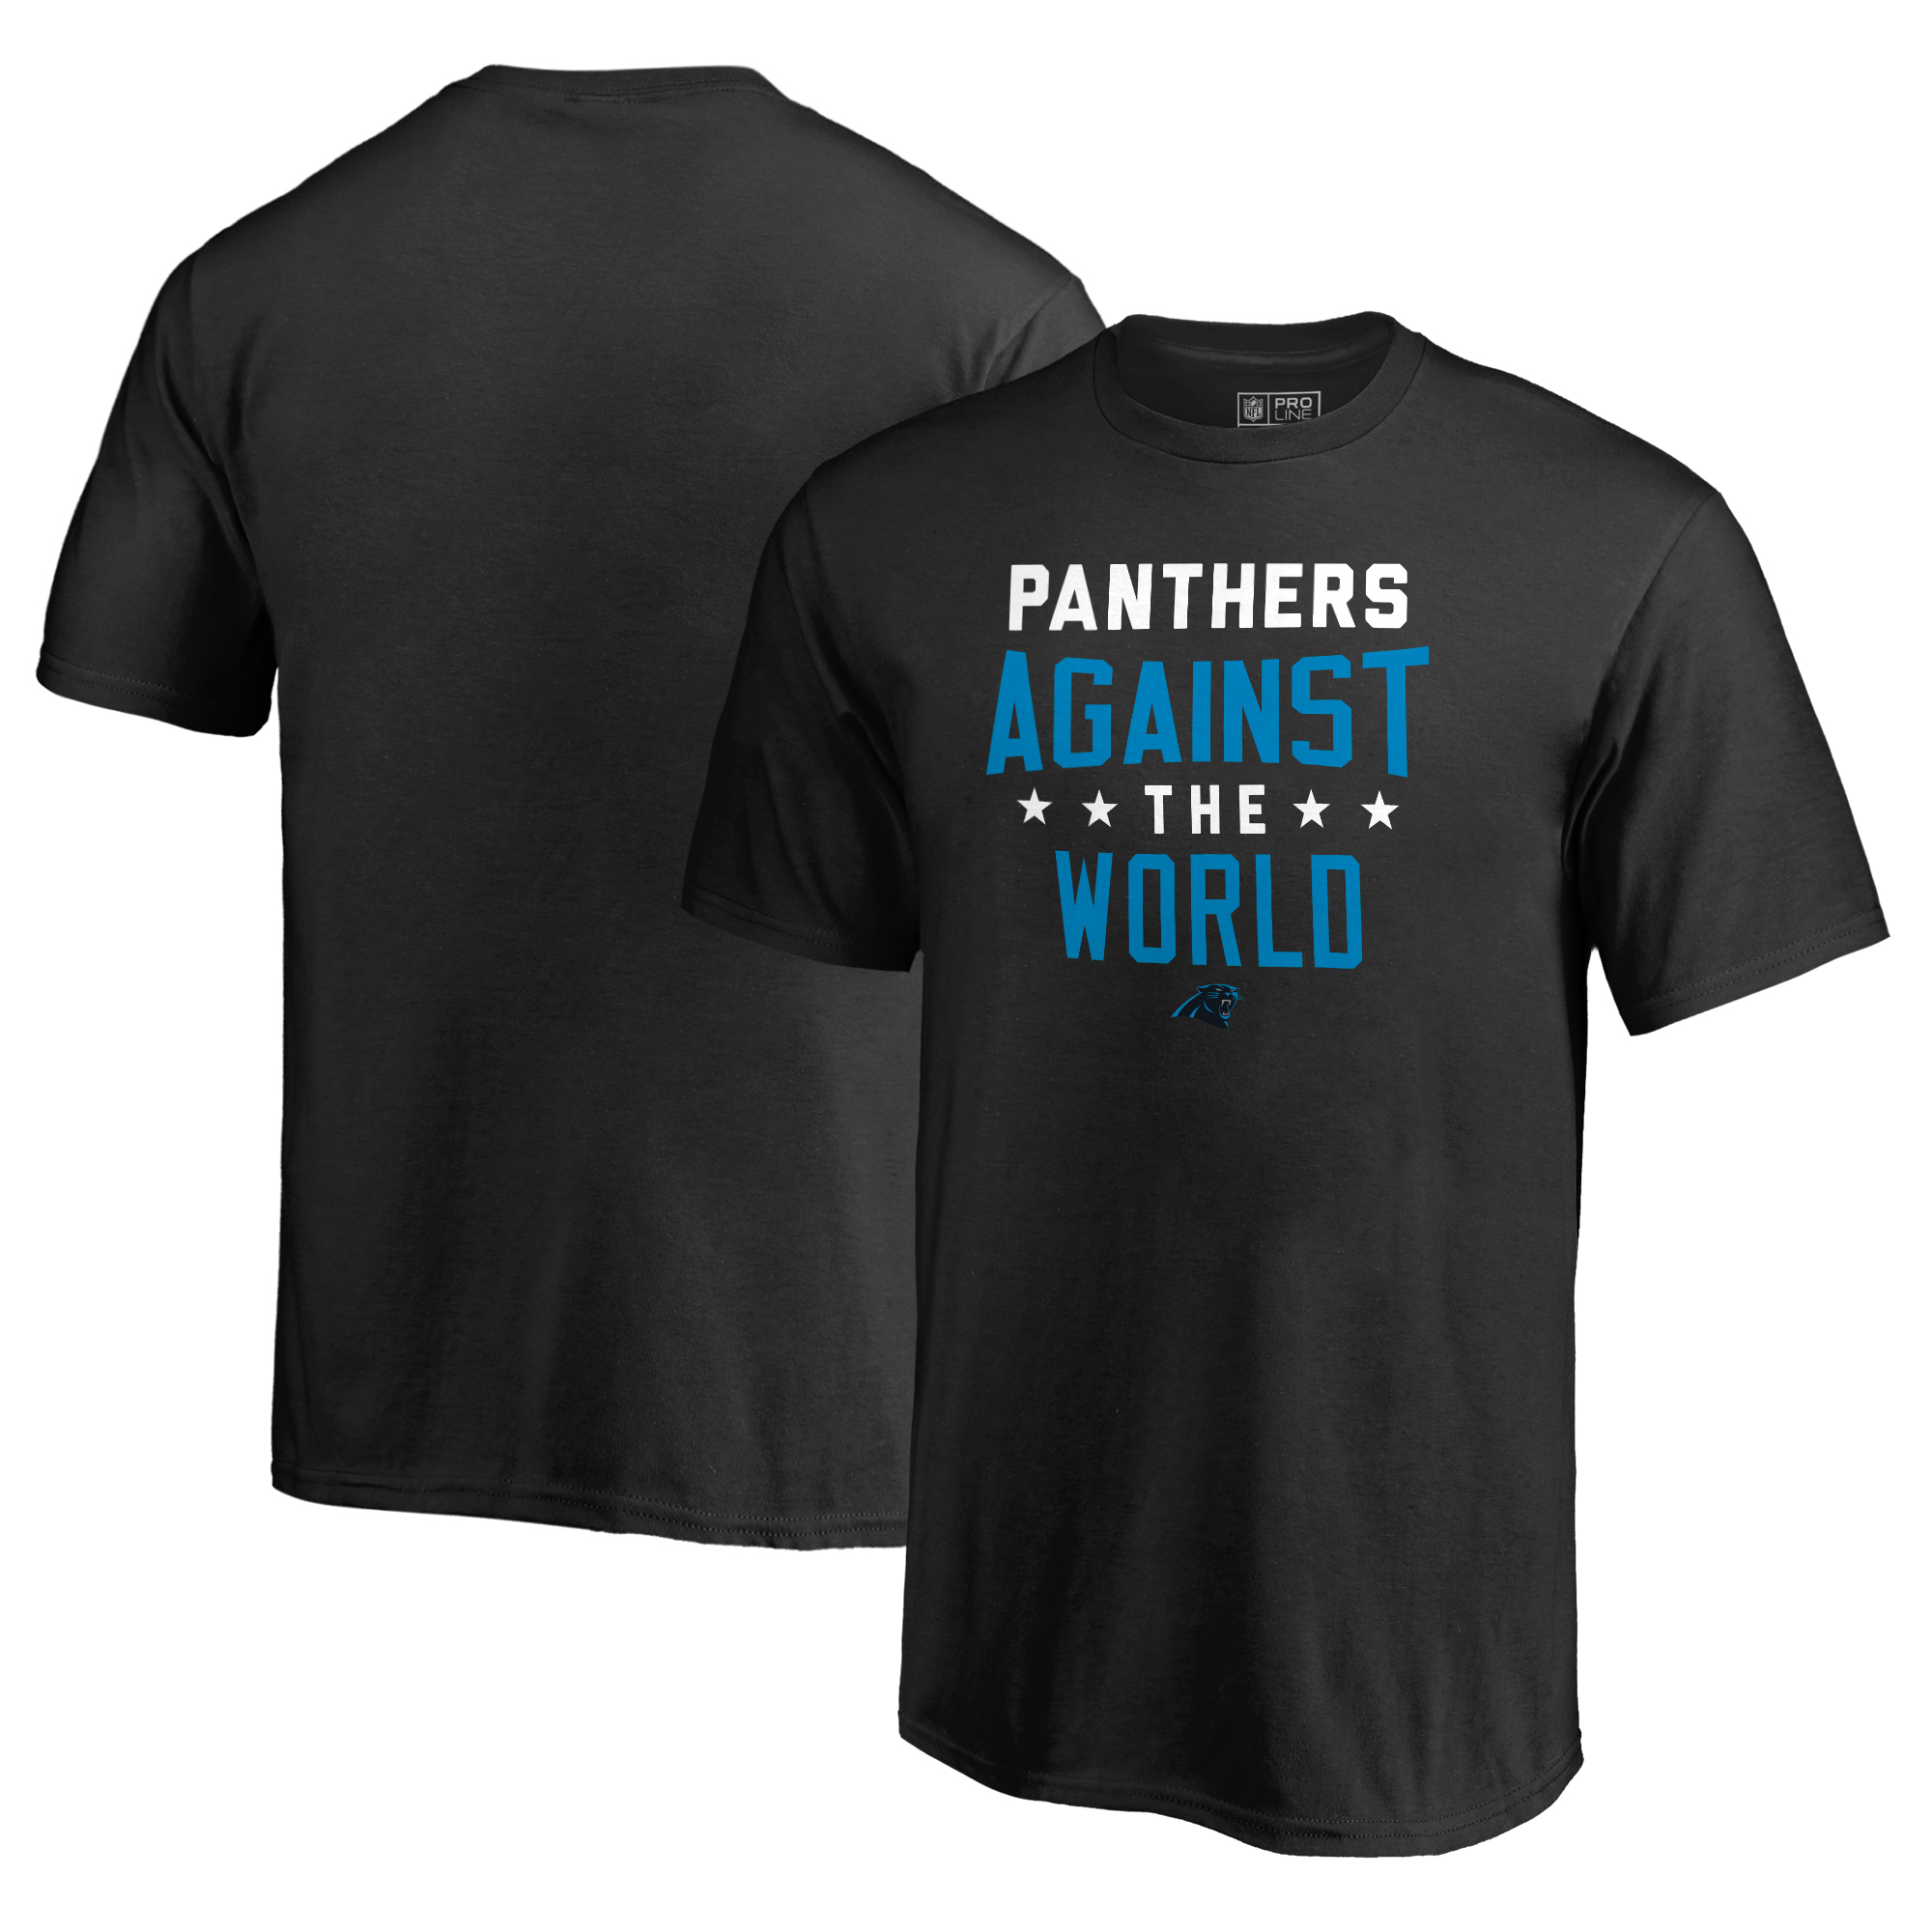 Carolina Panthers NFL Pro Line by Fanatics Branded Youth Against The World T-Shirt - Black